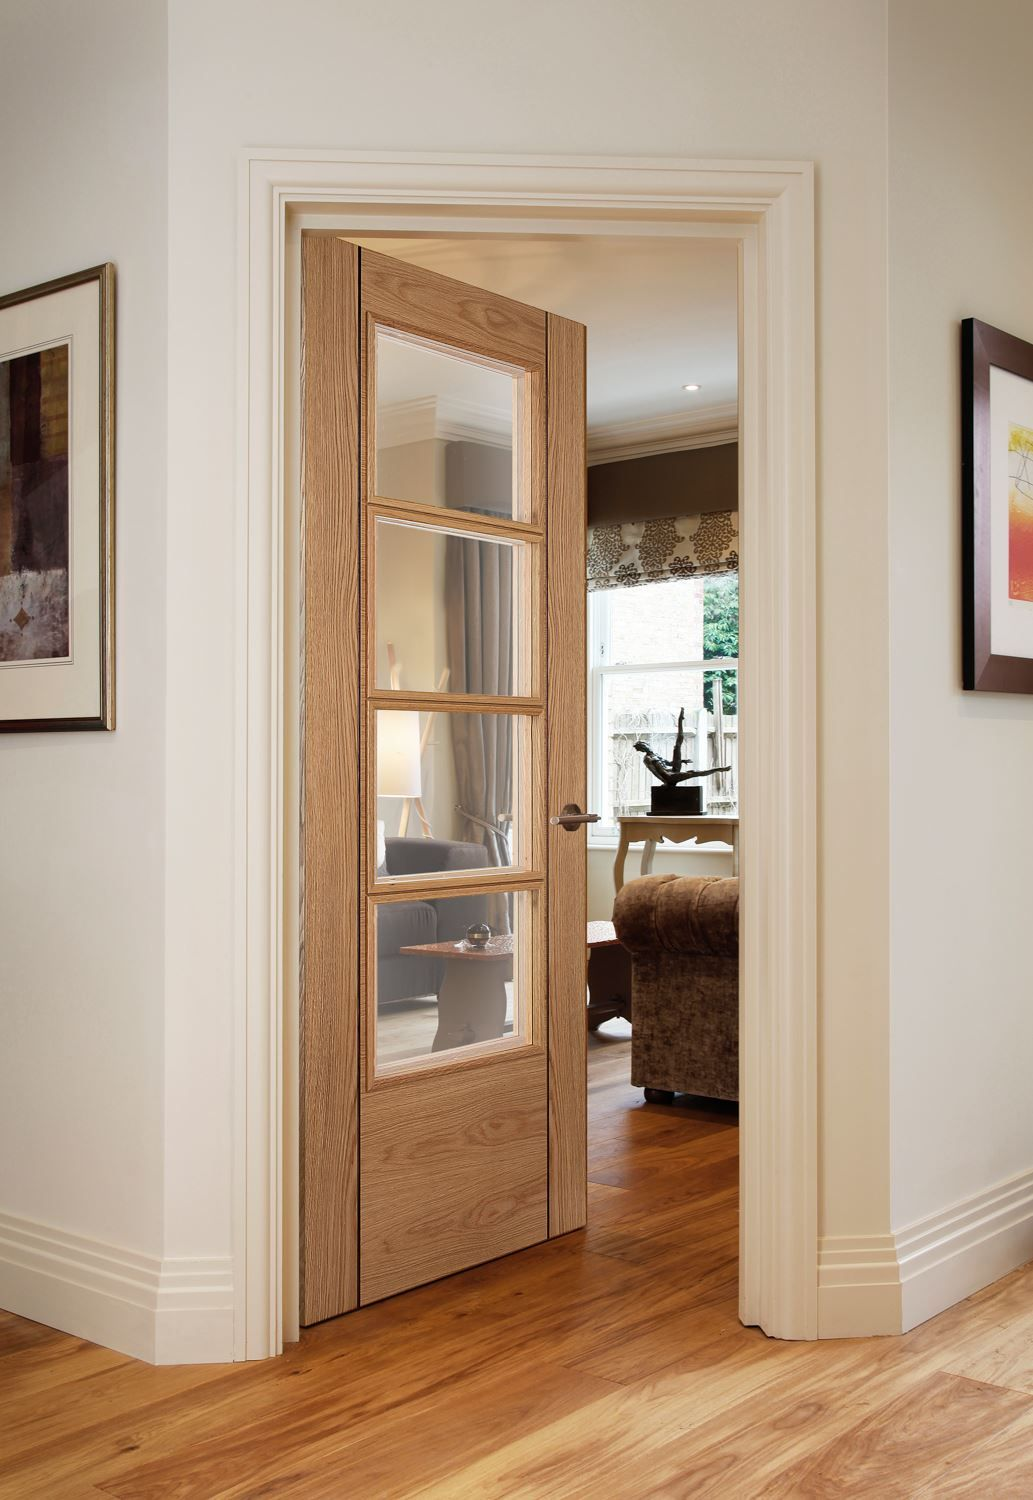 Modern Interior Doors Ideas 14: Oak Interior Doors, Doors